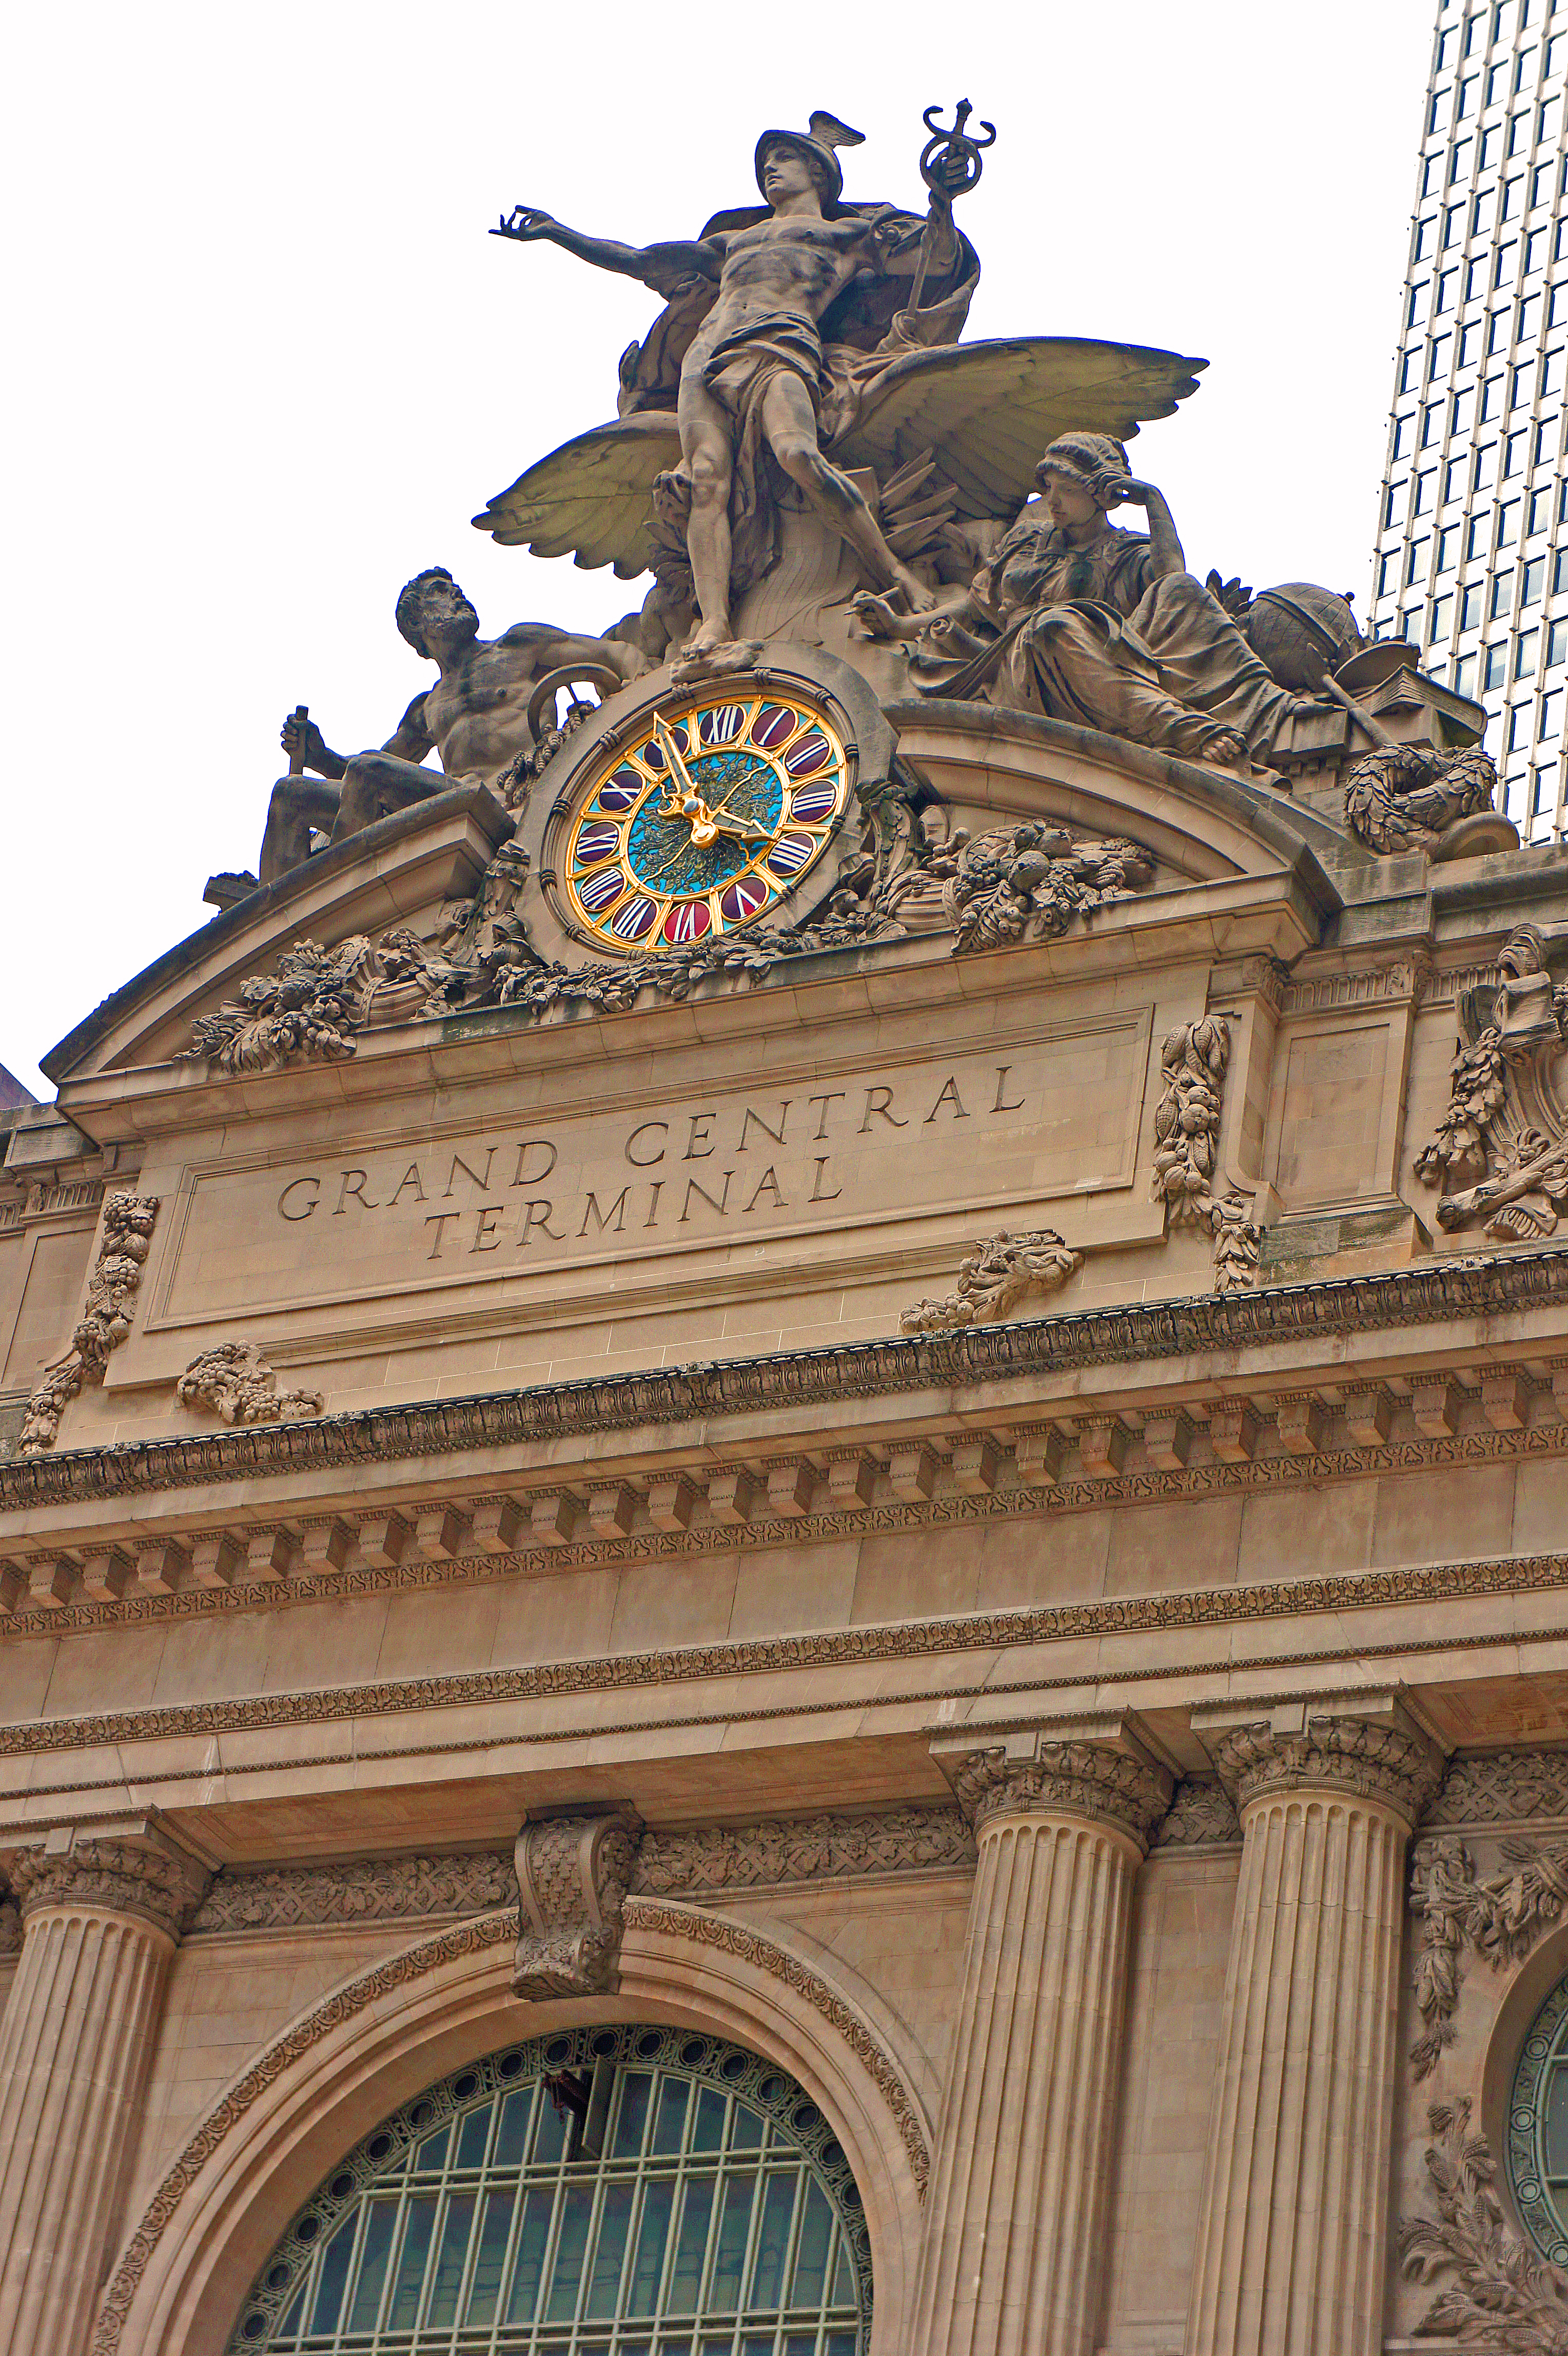 Grand Central Terminal Polycor Indiana Limestone